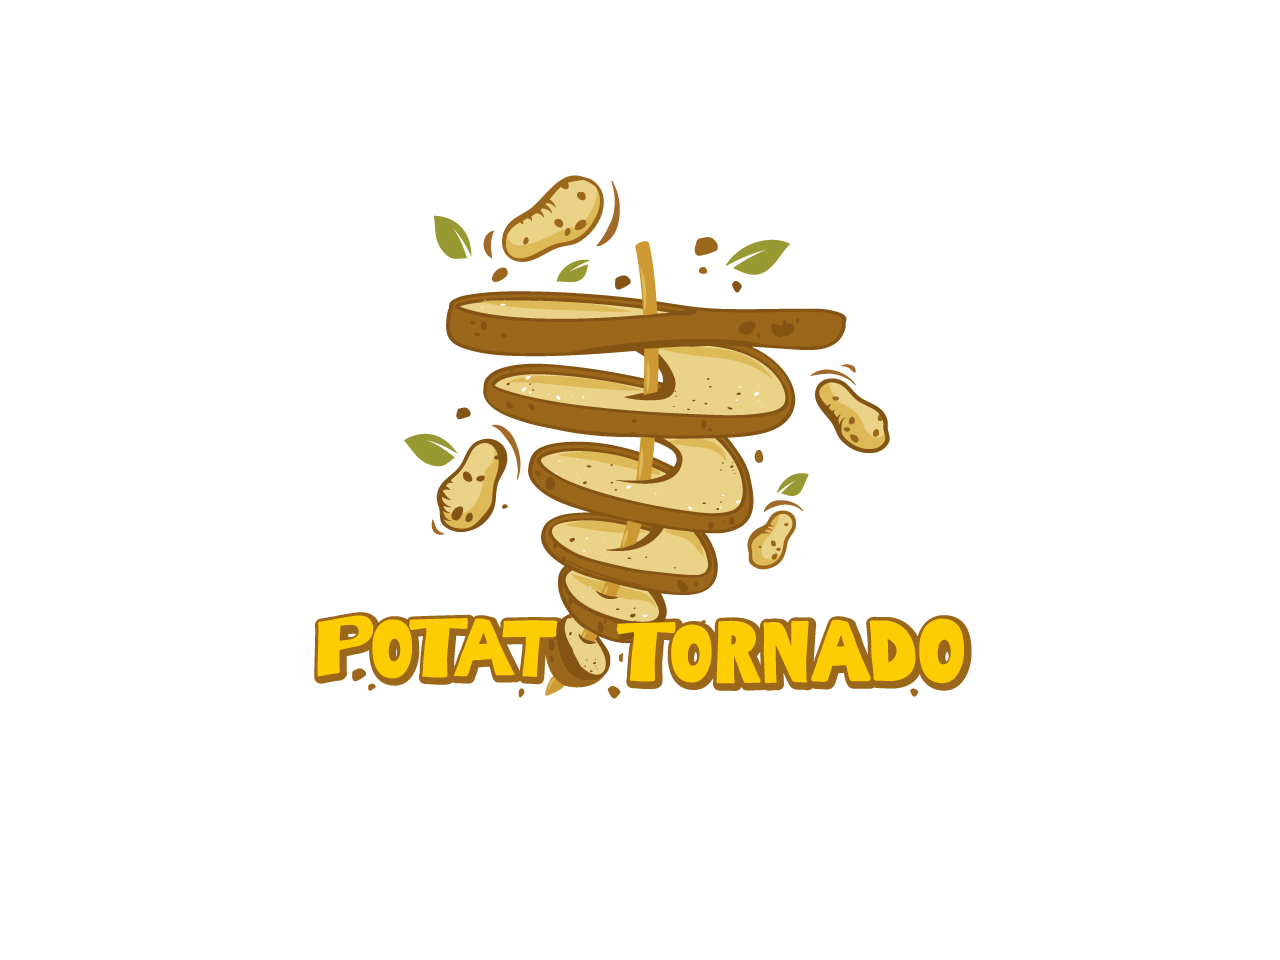 potato tornado logo spiral potato hut.